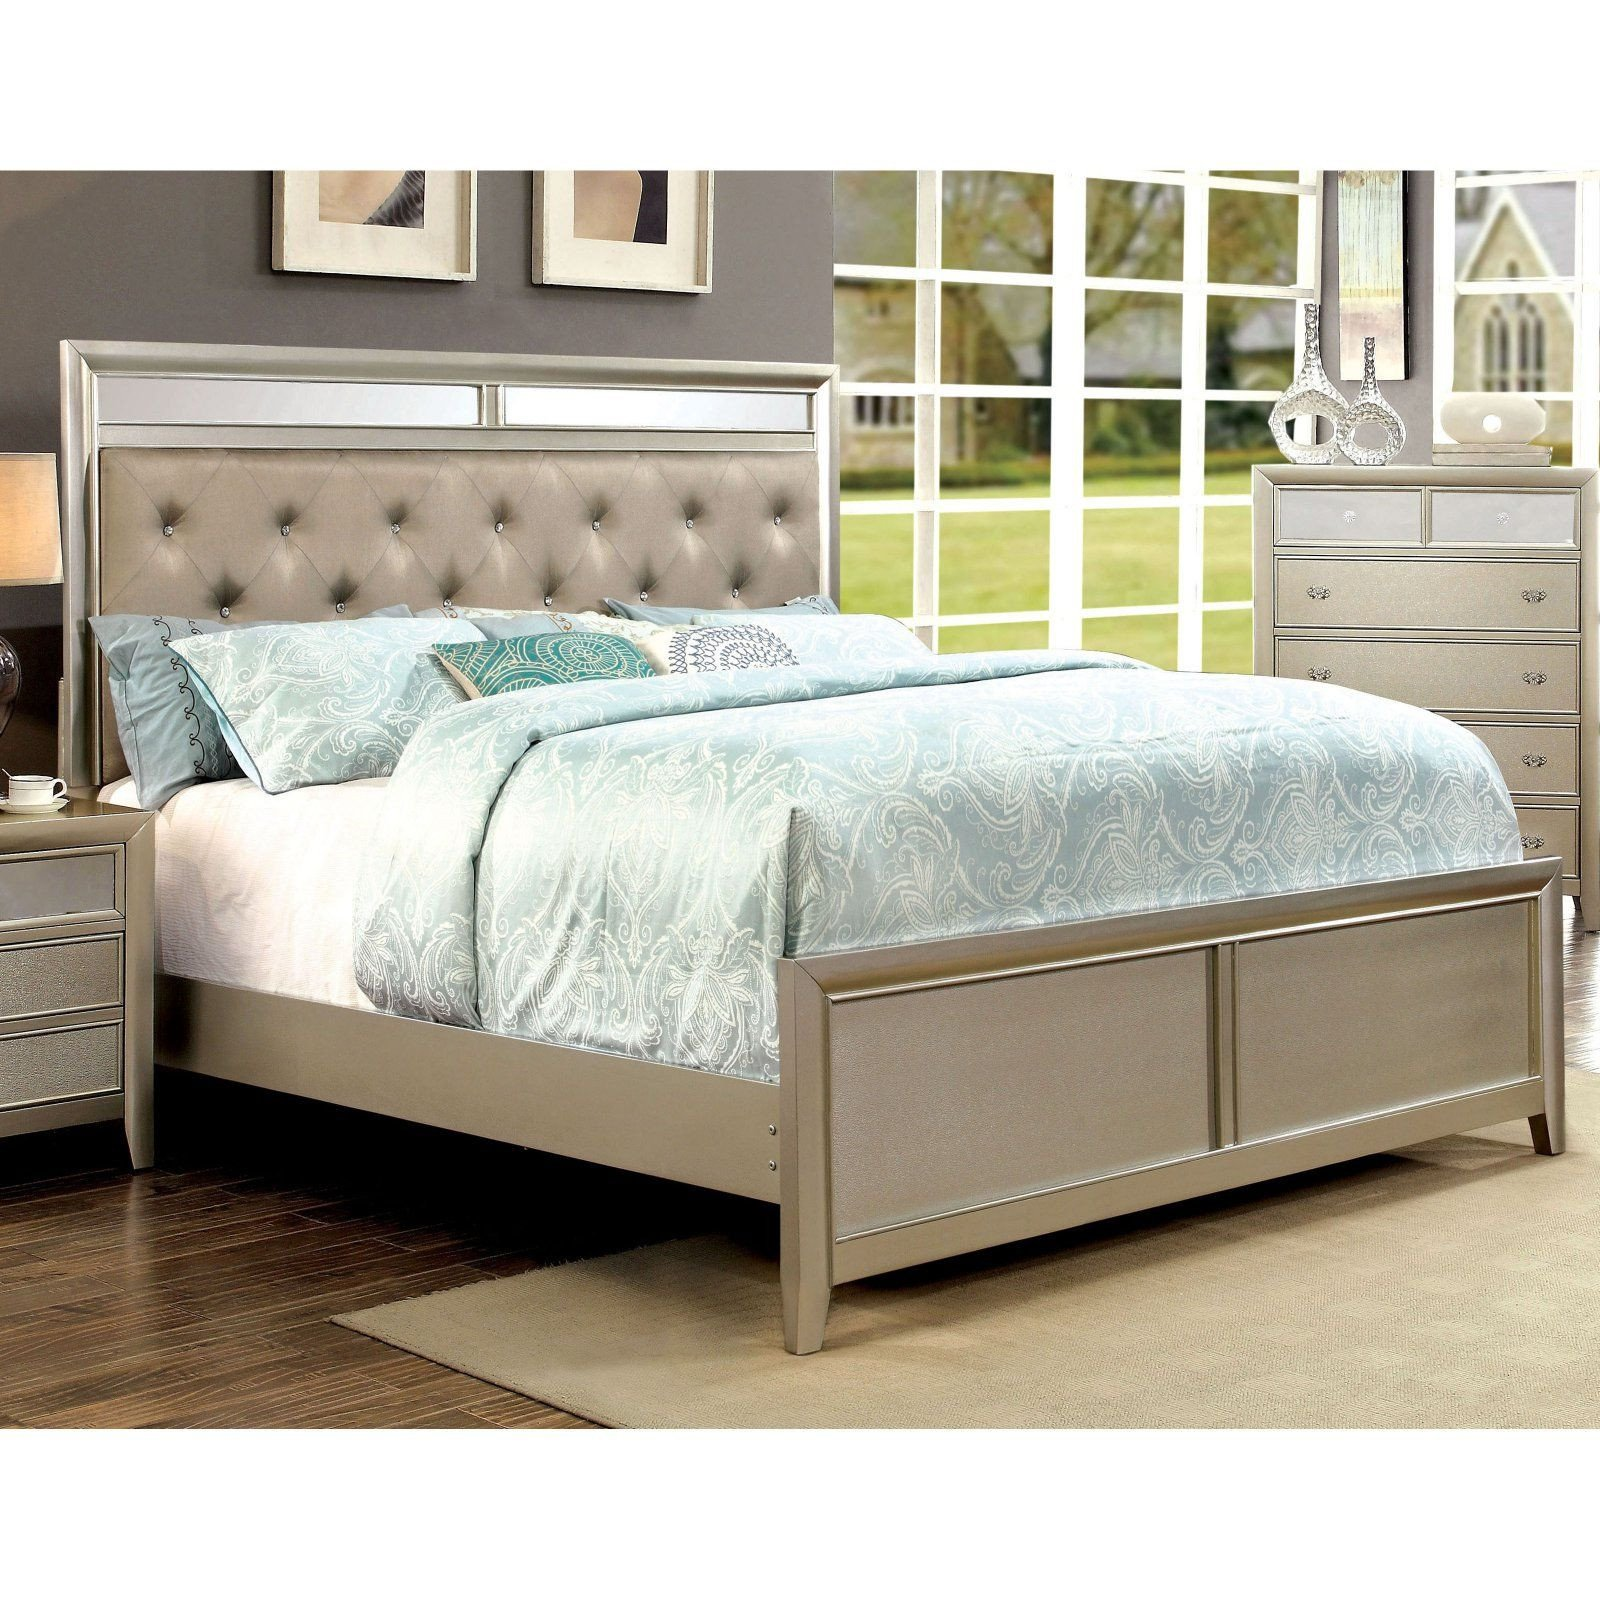 California King Bedroom Set New Furniture Of America Glendora Upholstered Panel Bed Size